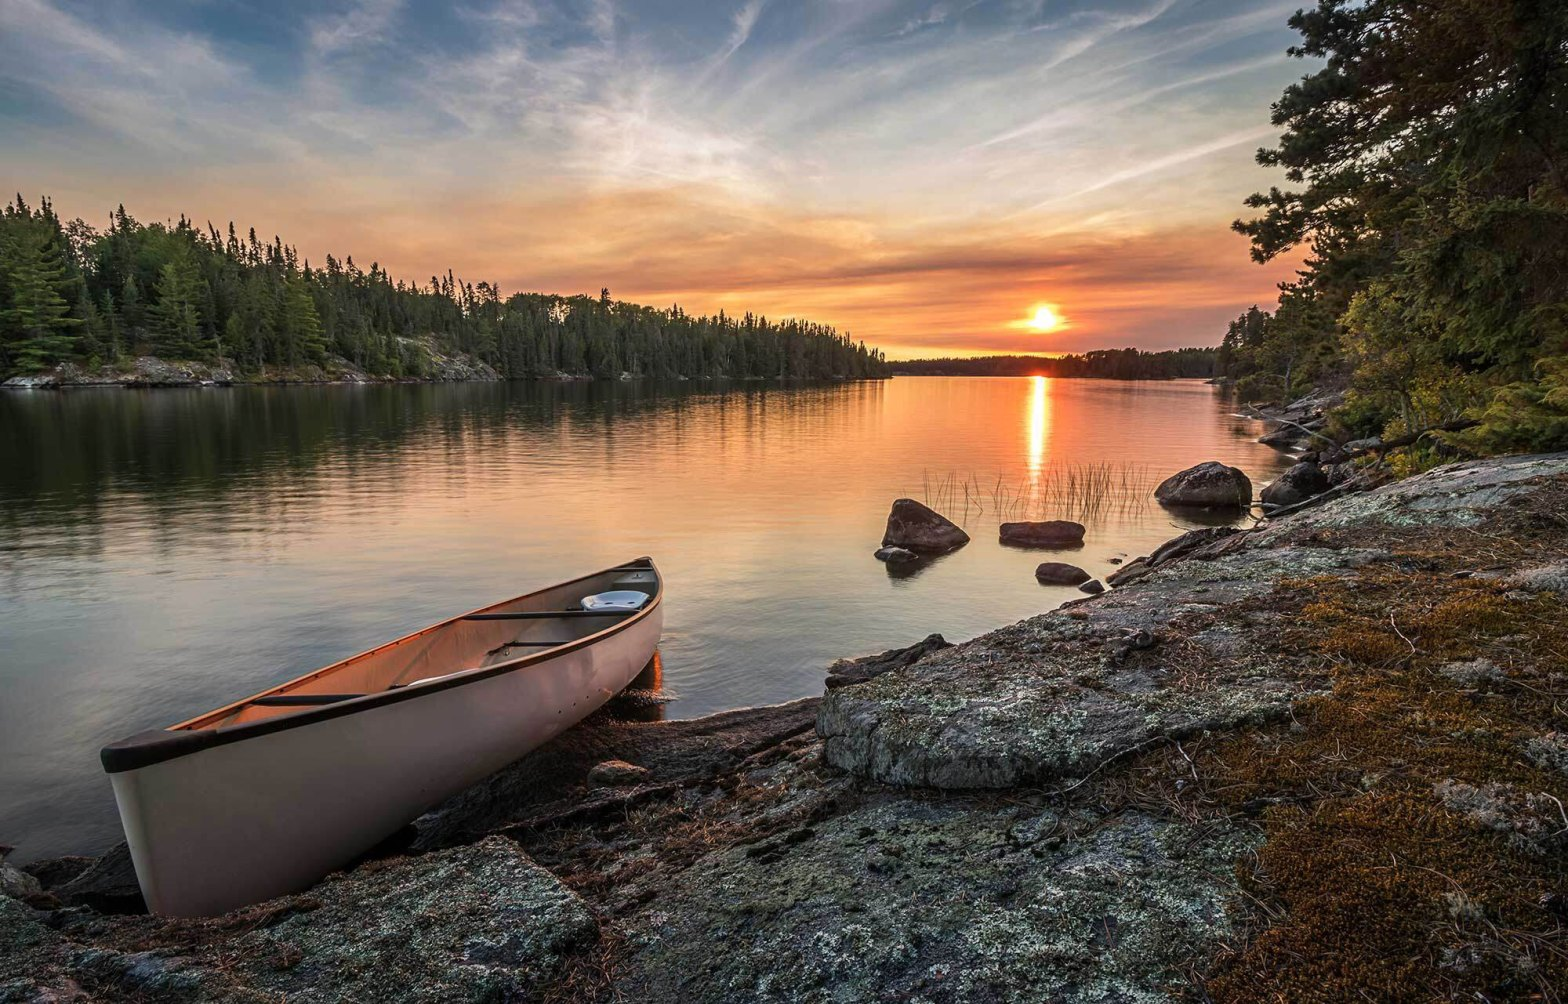 A lone canoe on shore at a peaceful lake at sunset